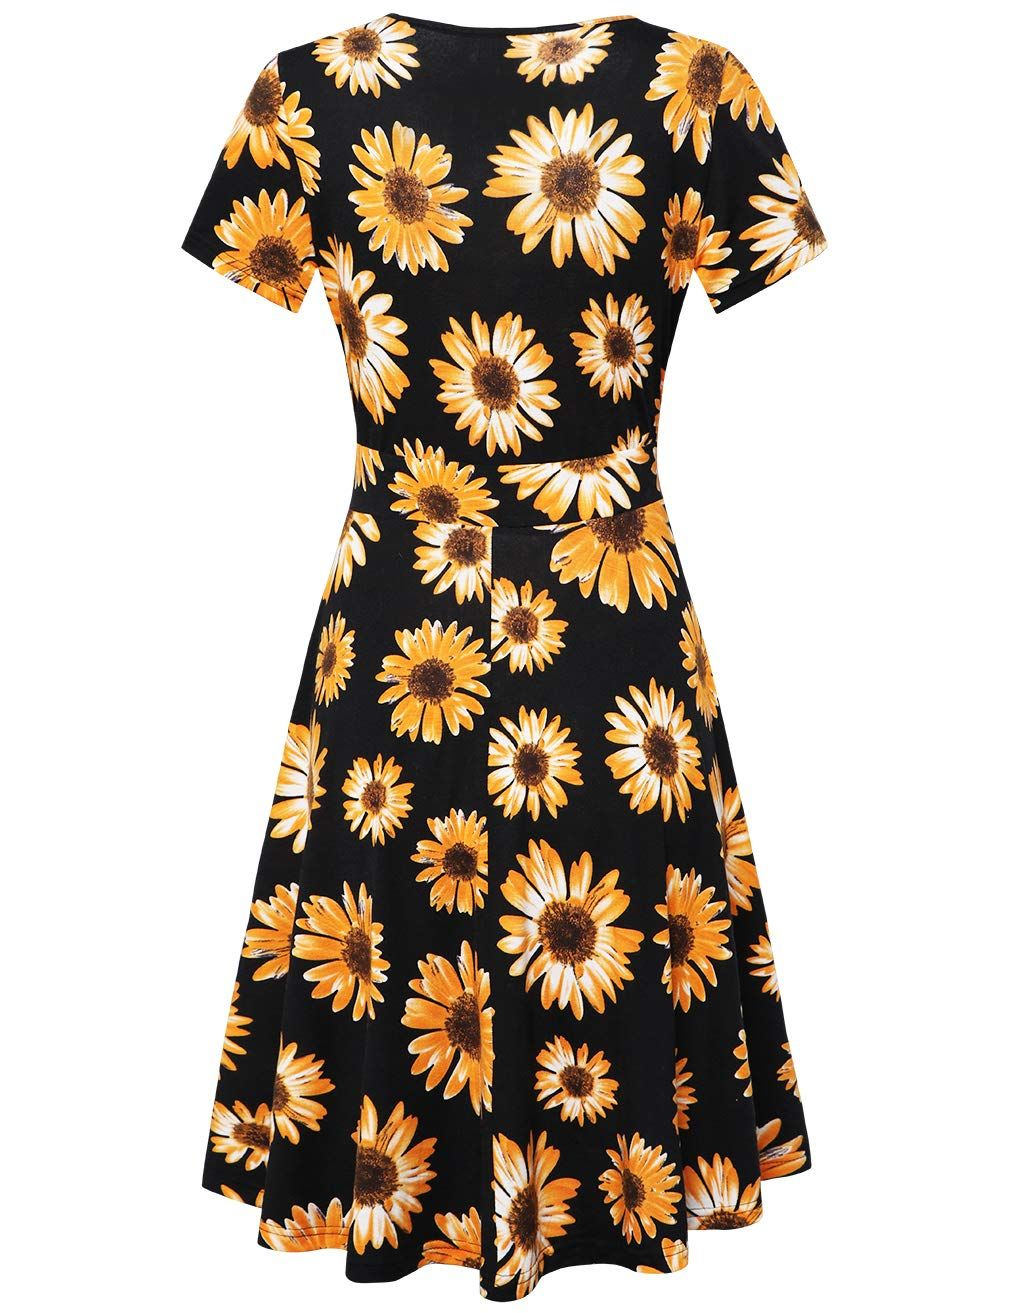 Sunglory Floral Dresses Sleeves Sundress Floral Dresses With Sleeves Casual Dresses For Teens Knee Length Dresses Casual [ 1313 x 1010 Pixel ]